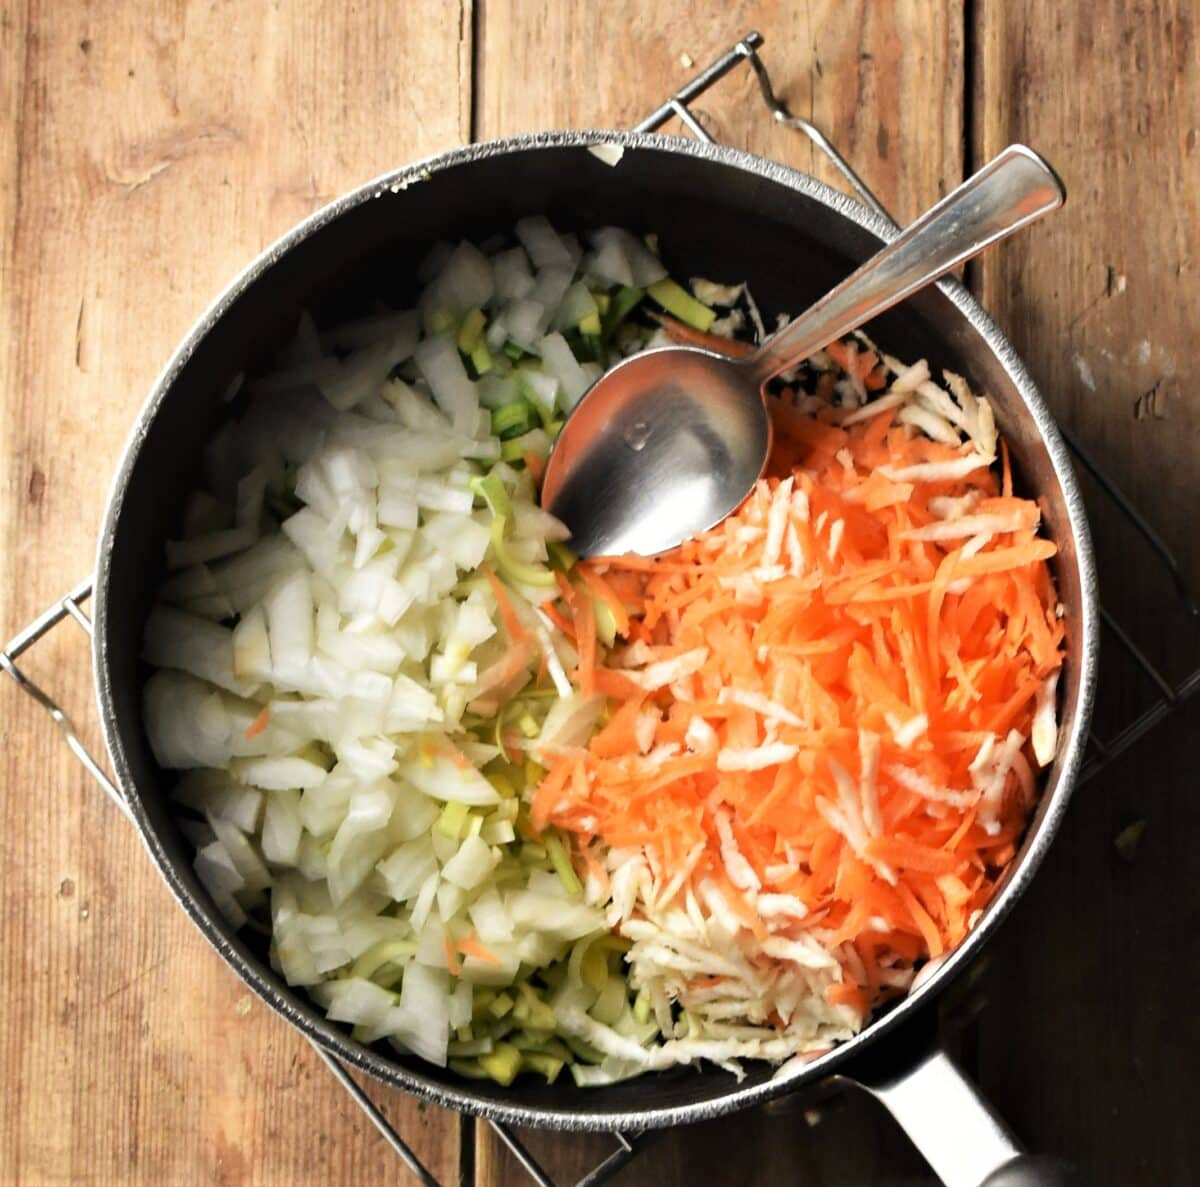 Chopped onion and grated vegetables in large pot with spoon.